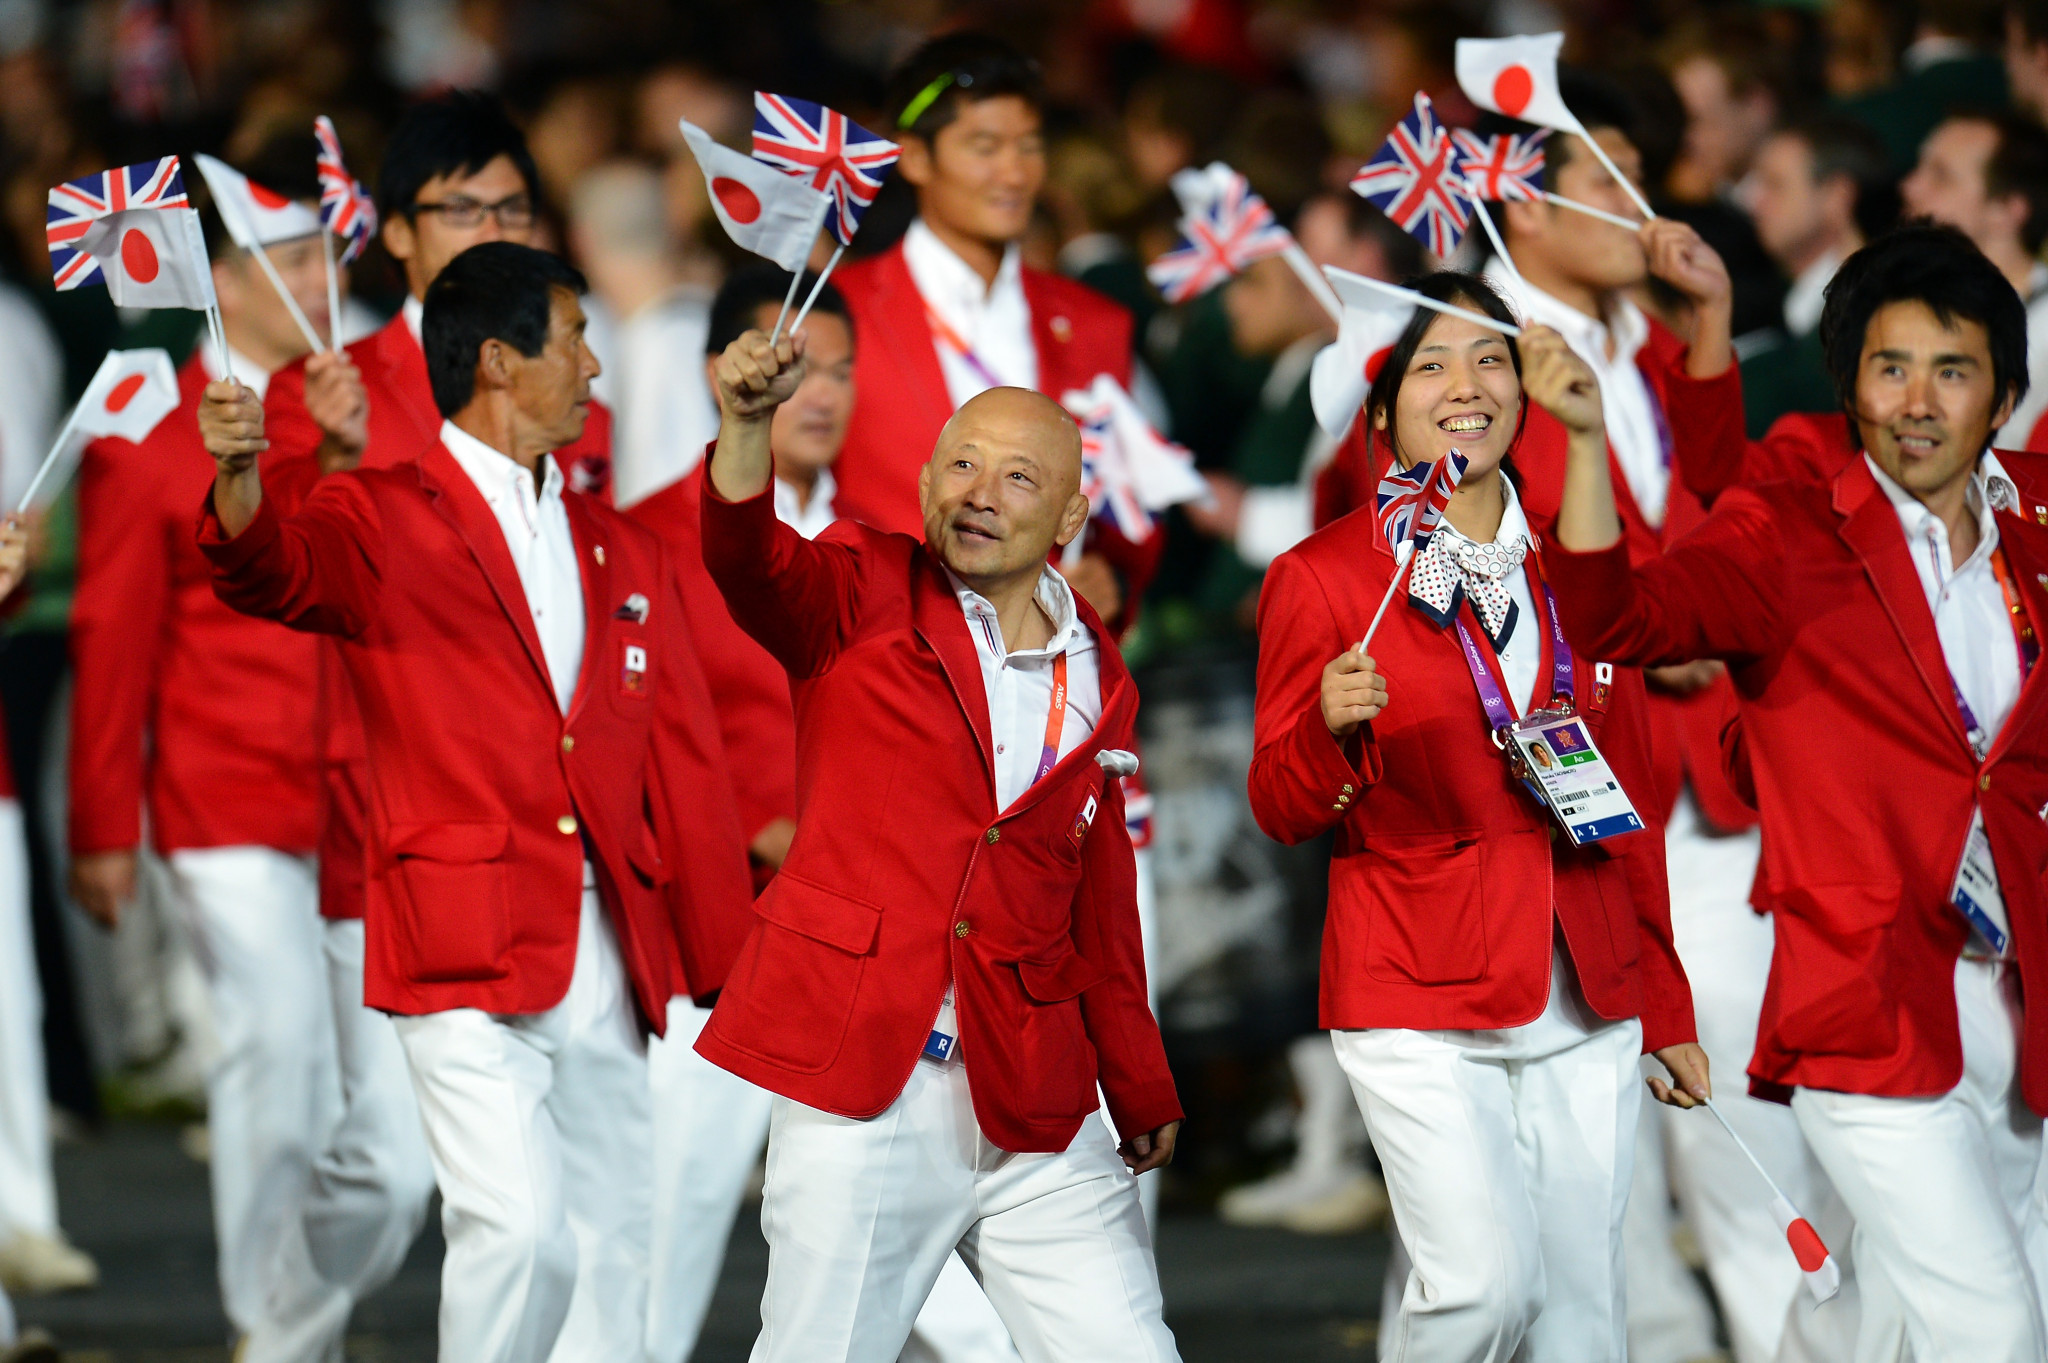 Relations between Japan and the UK have grown since London 2012 thanks largely to the two countries recent history and immediate future of the Olympics and Paralympic Games ©Getty Images